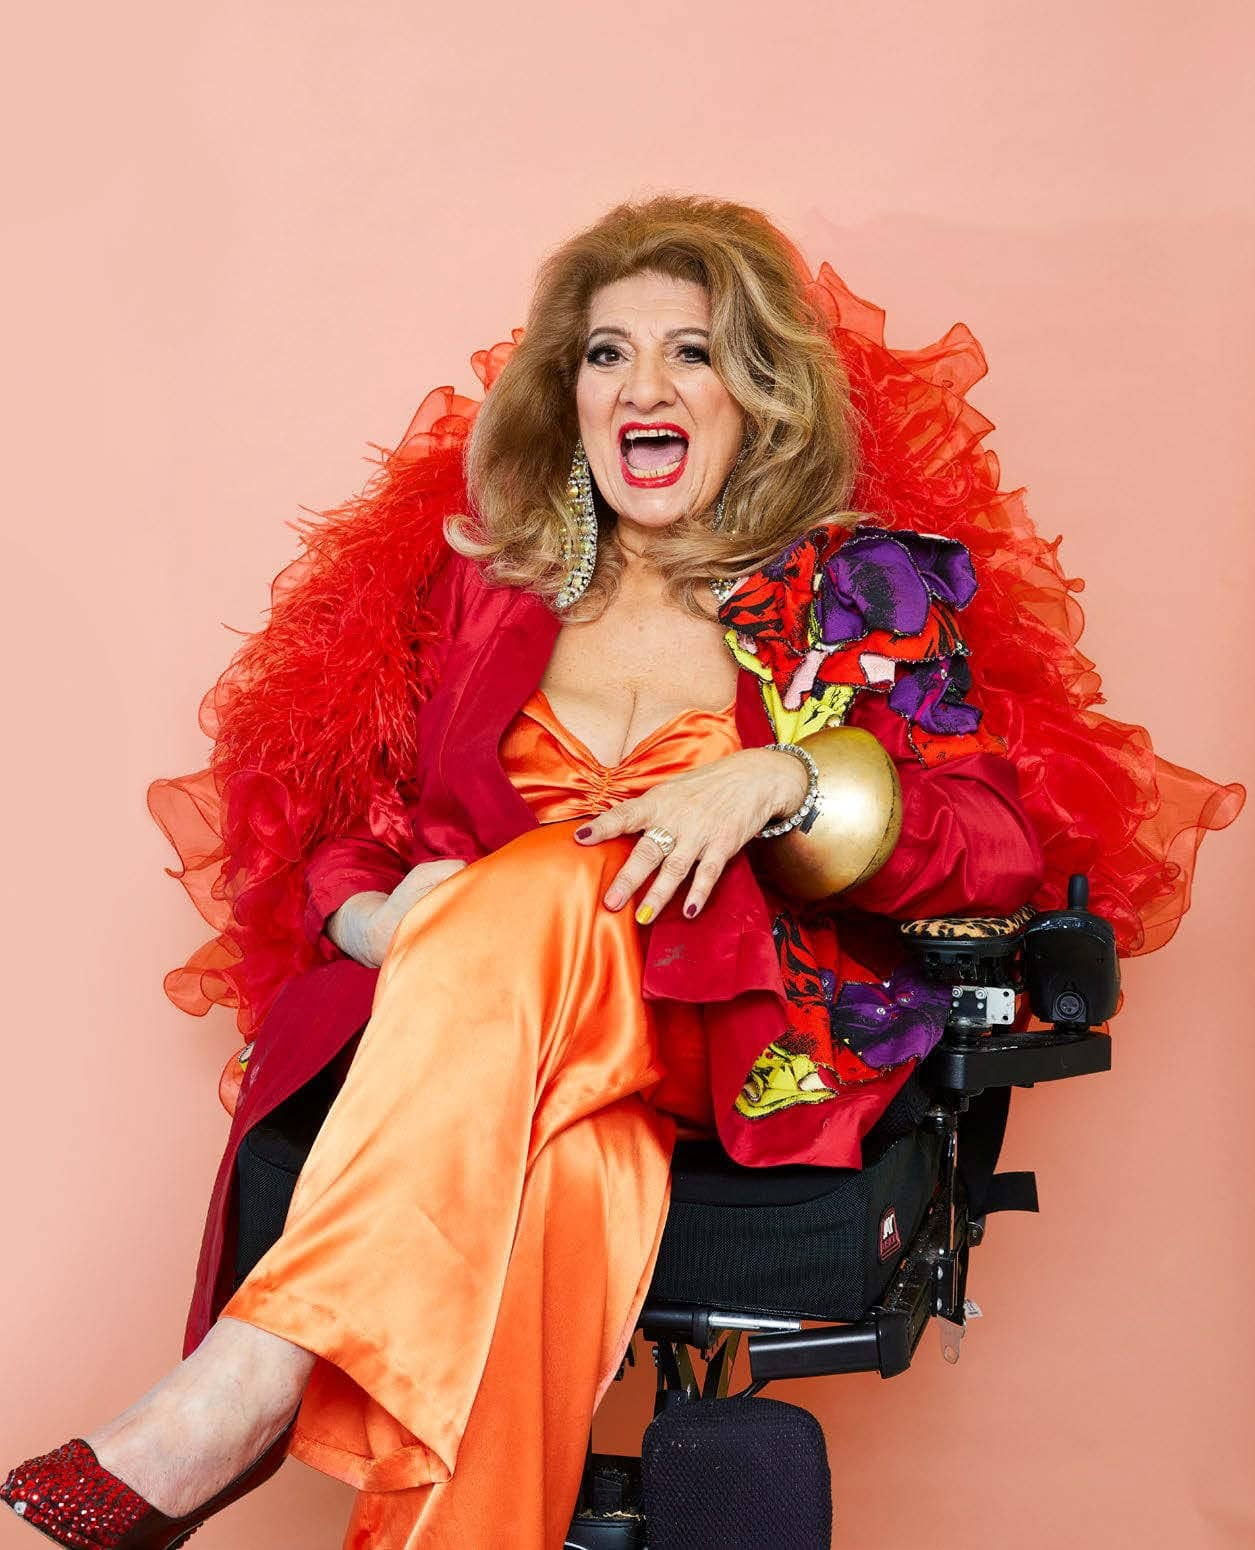 The Enduring Spirit Of Maria Venuti